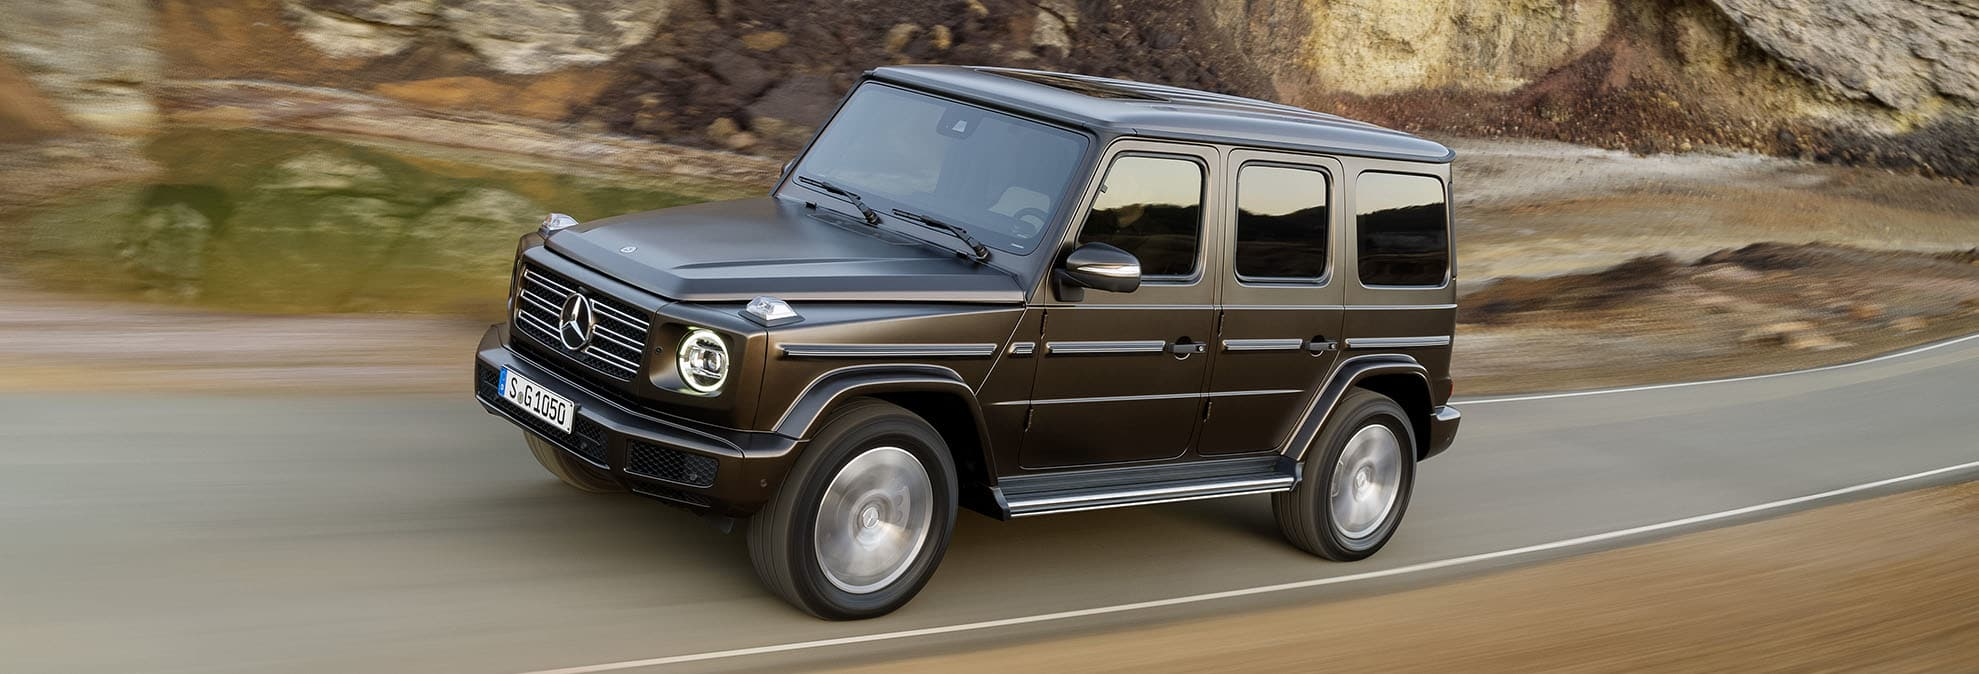 2019 Mercedes Benz G Class Is Bigger And Modernized But